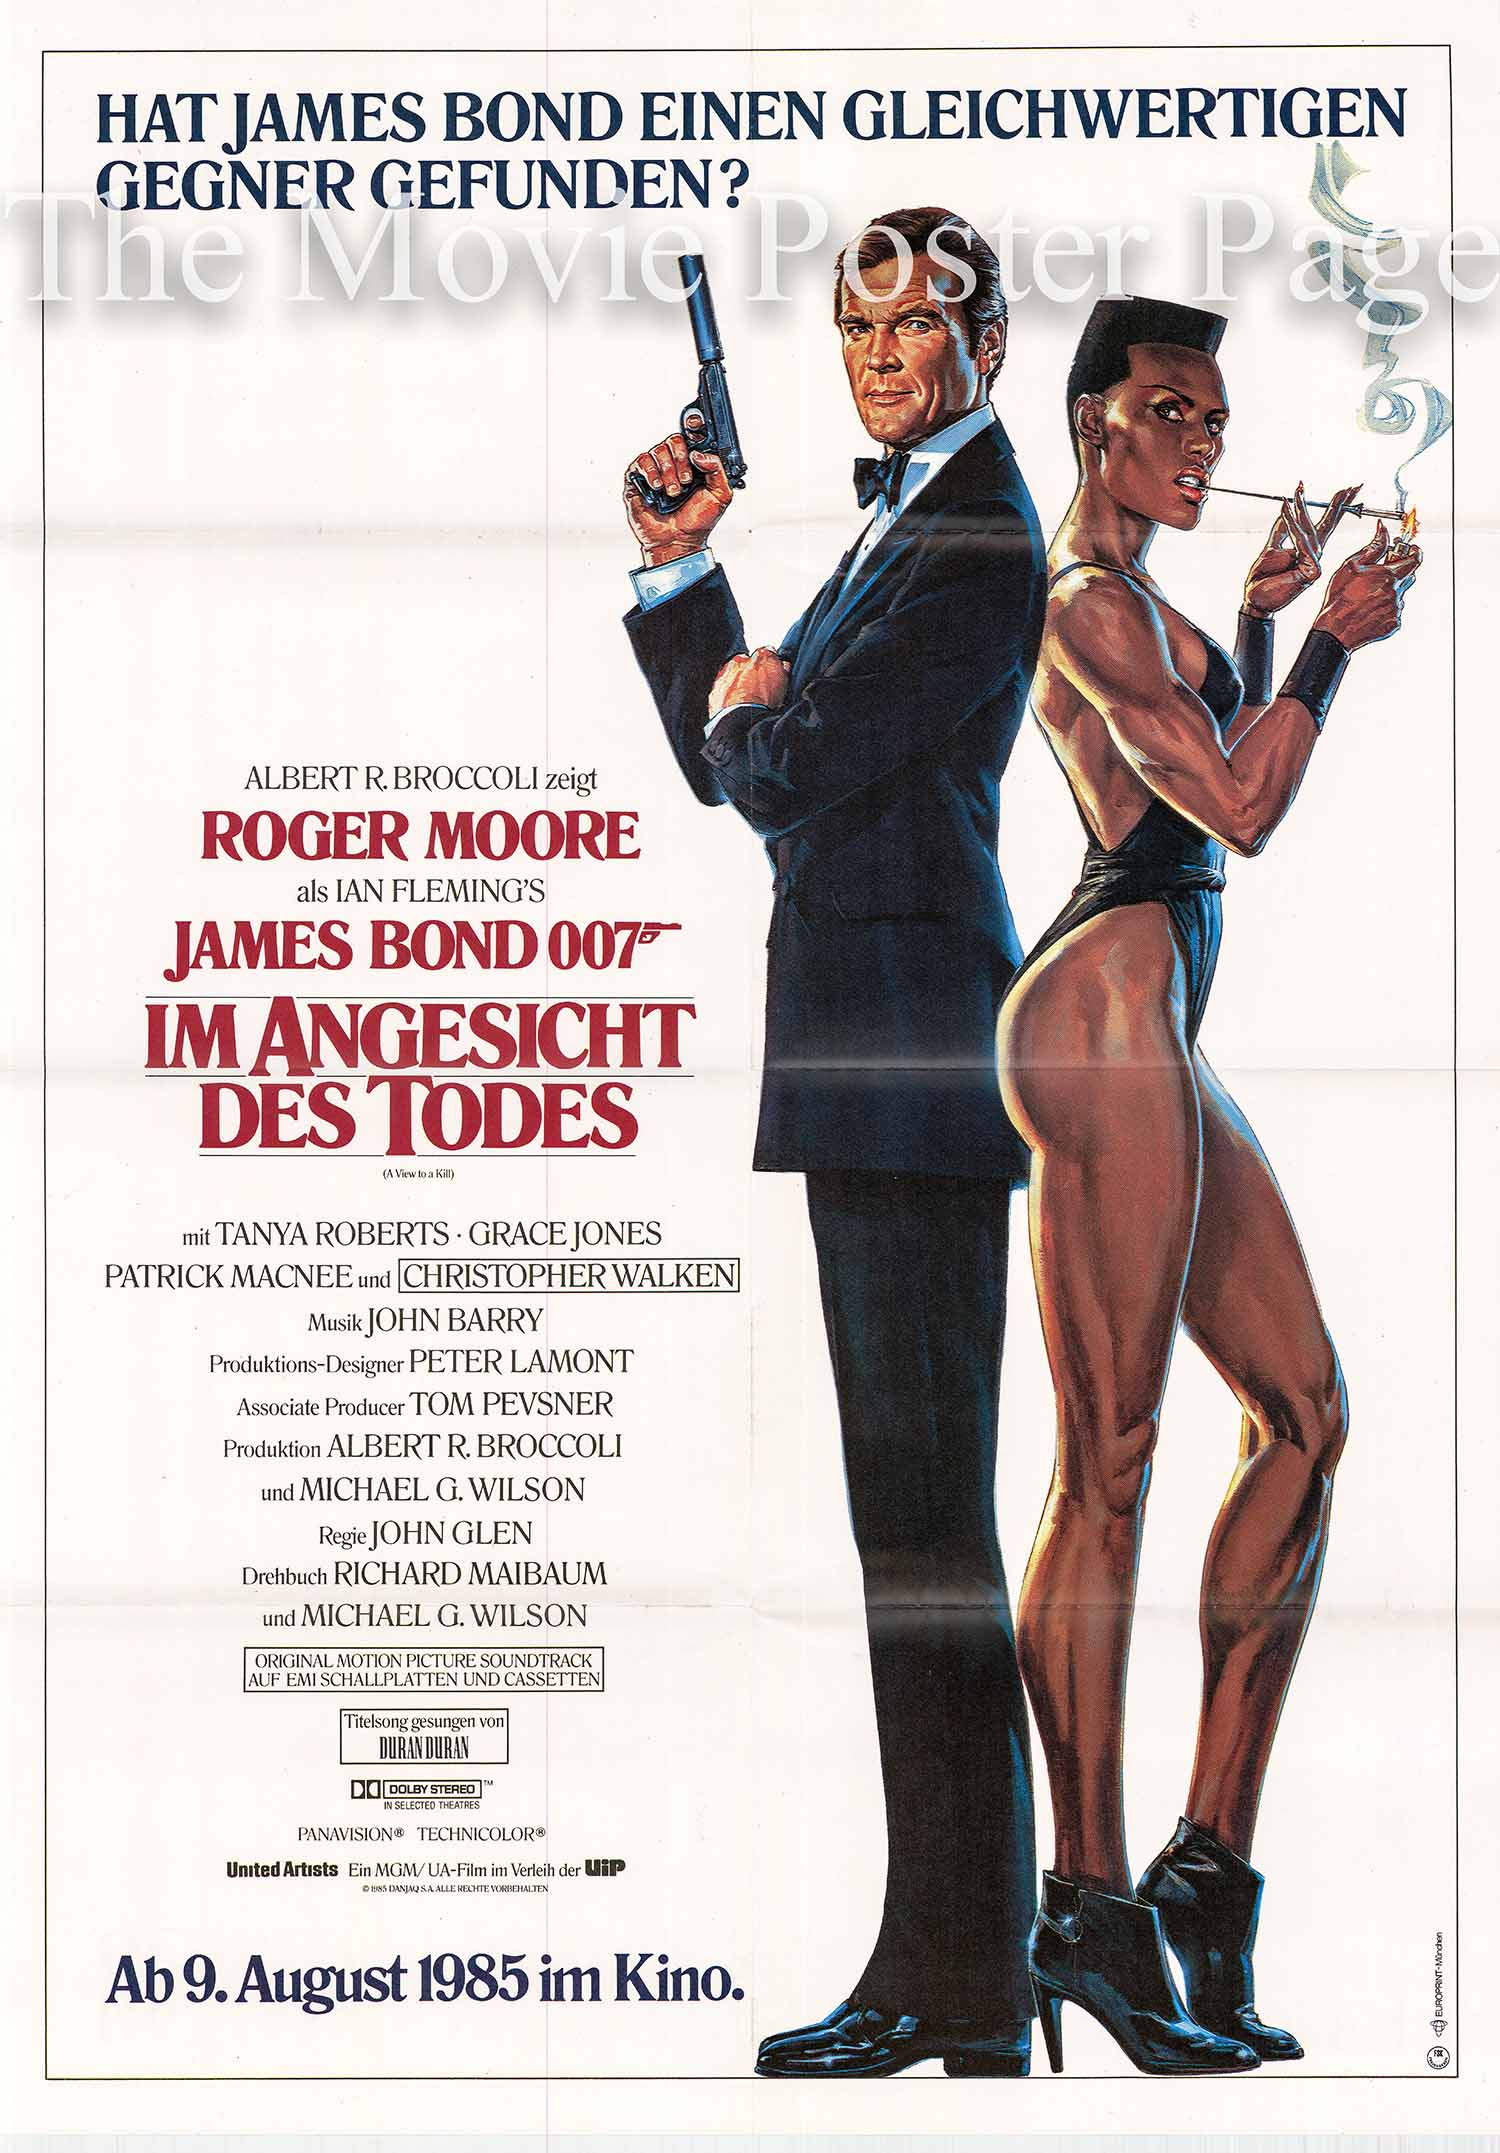 Pictured is a German advance one-sheet poster made to promote the 1985 John Glen film A View to a Kill Starring Roger Moore as James Bond.